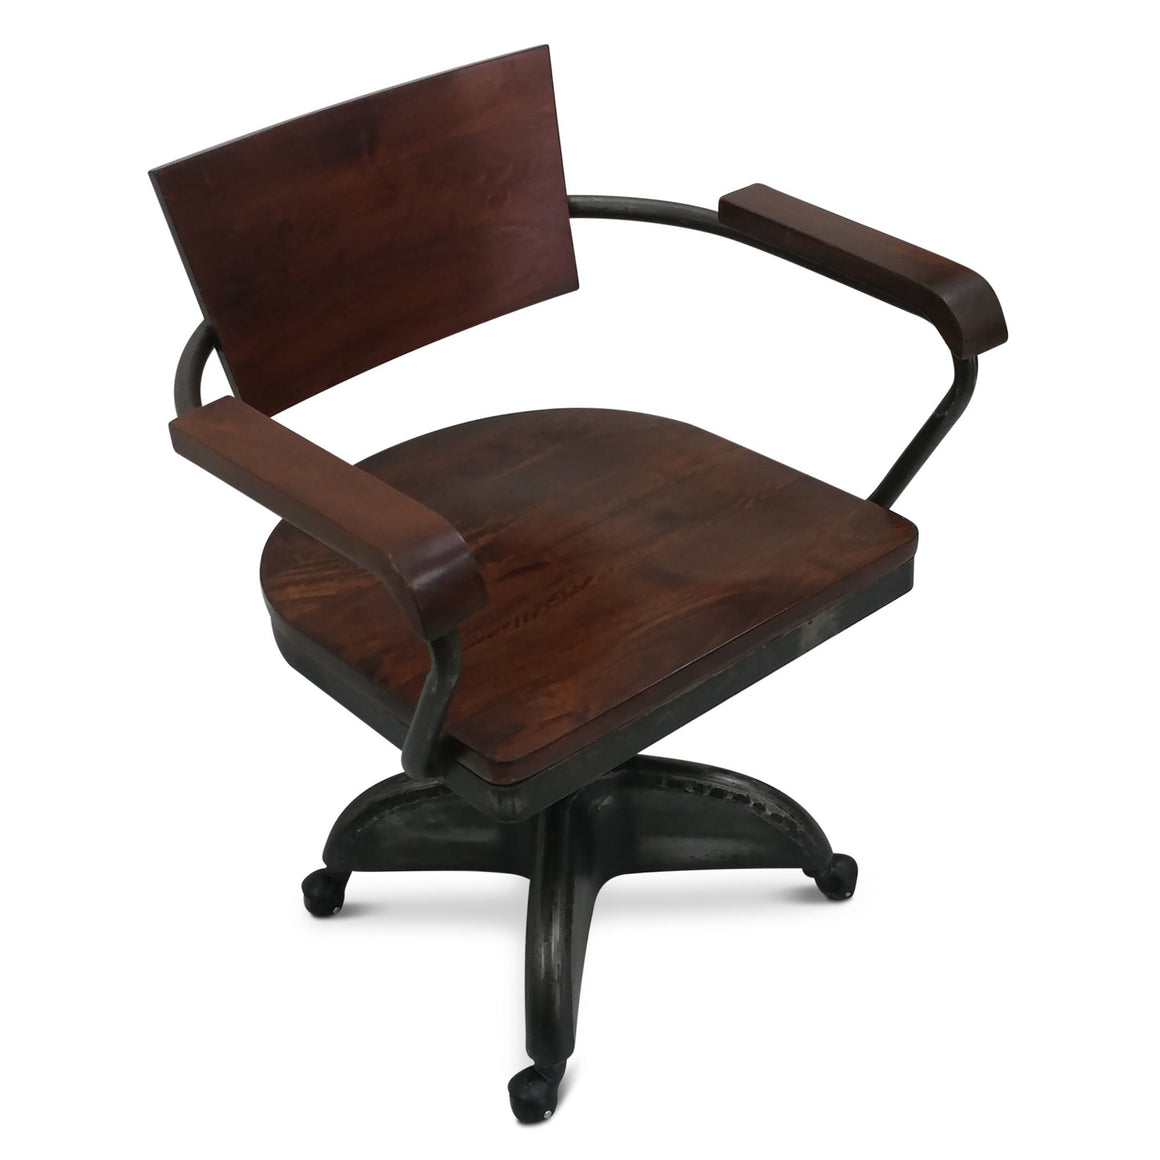 Industrial Vintage Style Solid Wood Iron Office Chair - Rustic Deco Incorporated